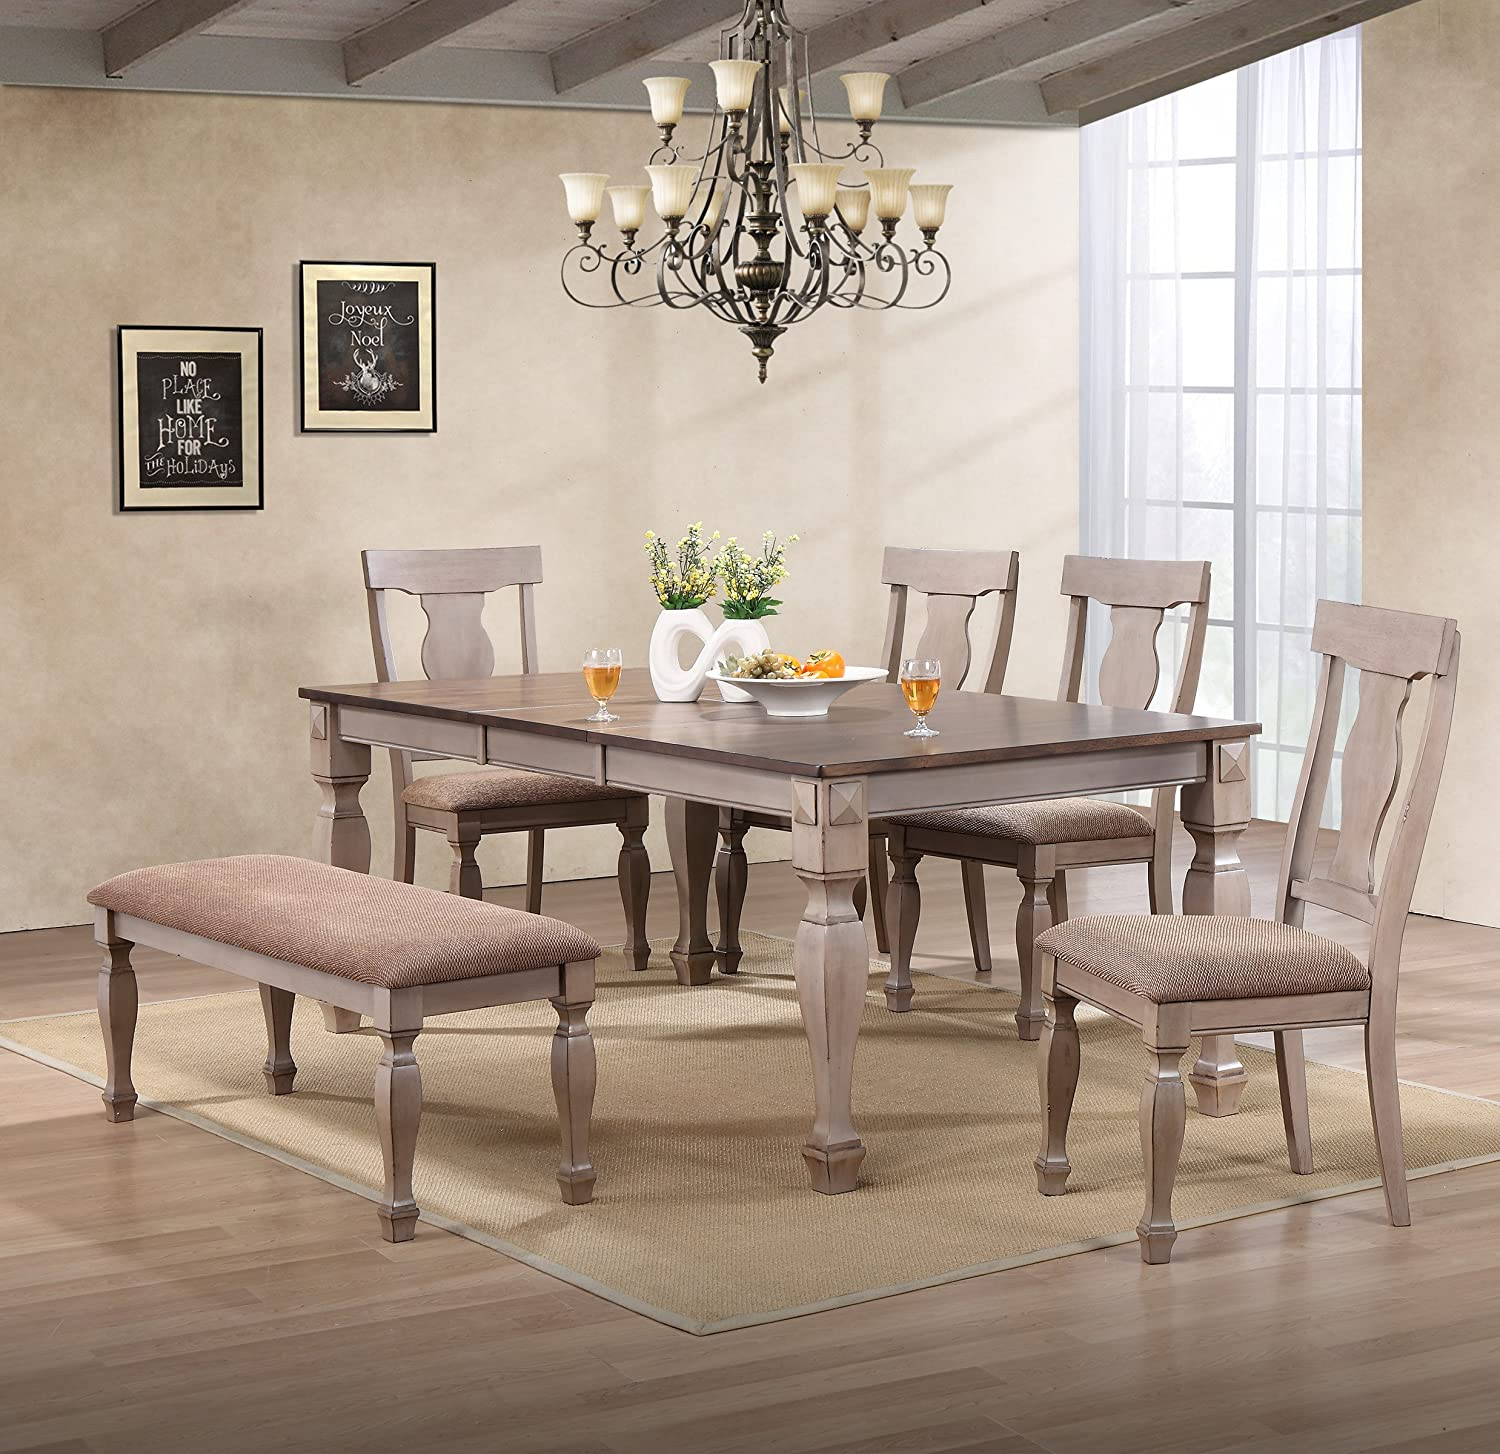 Kings Brand Almon 2-Tone Brown Wood 6-Piece Dining Room Set, Table, Bench 4 Chairs